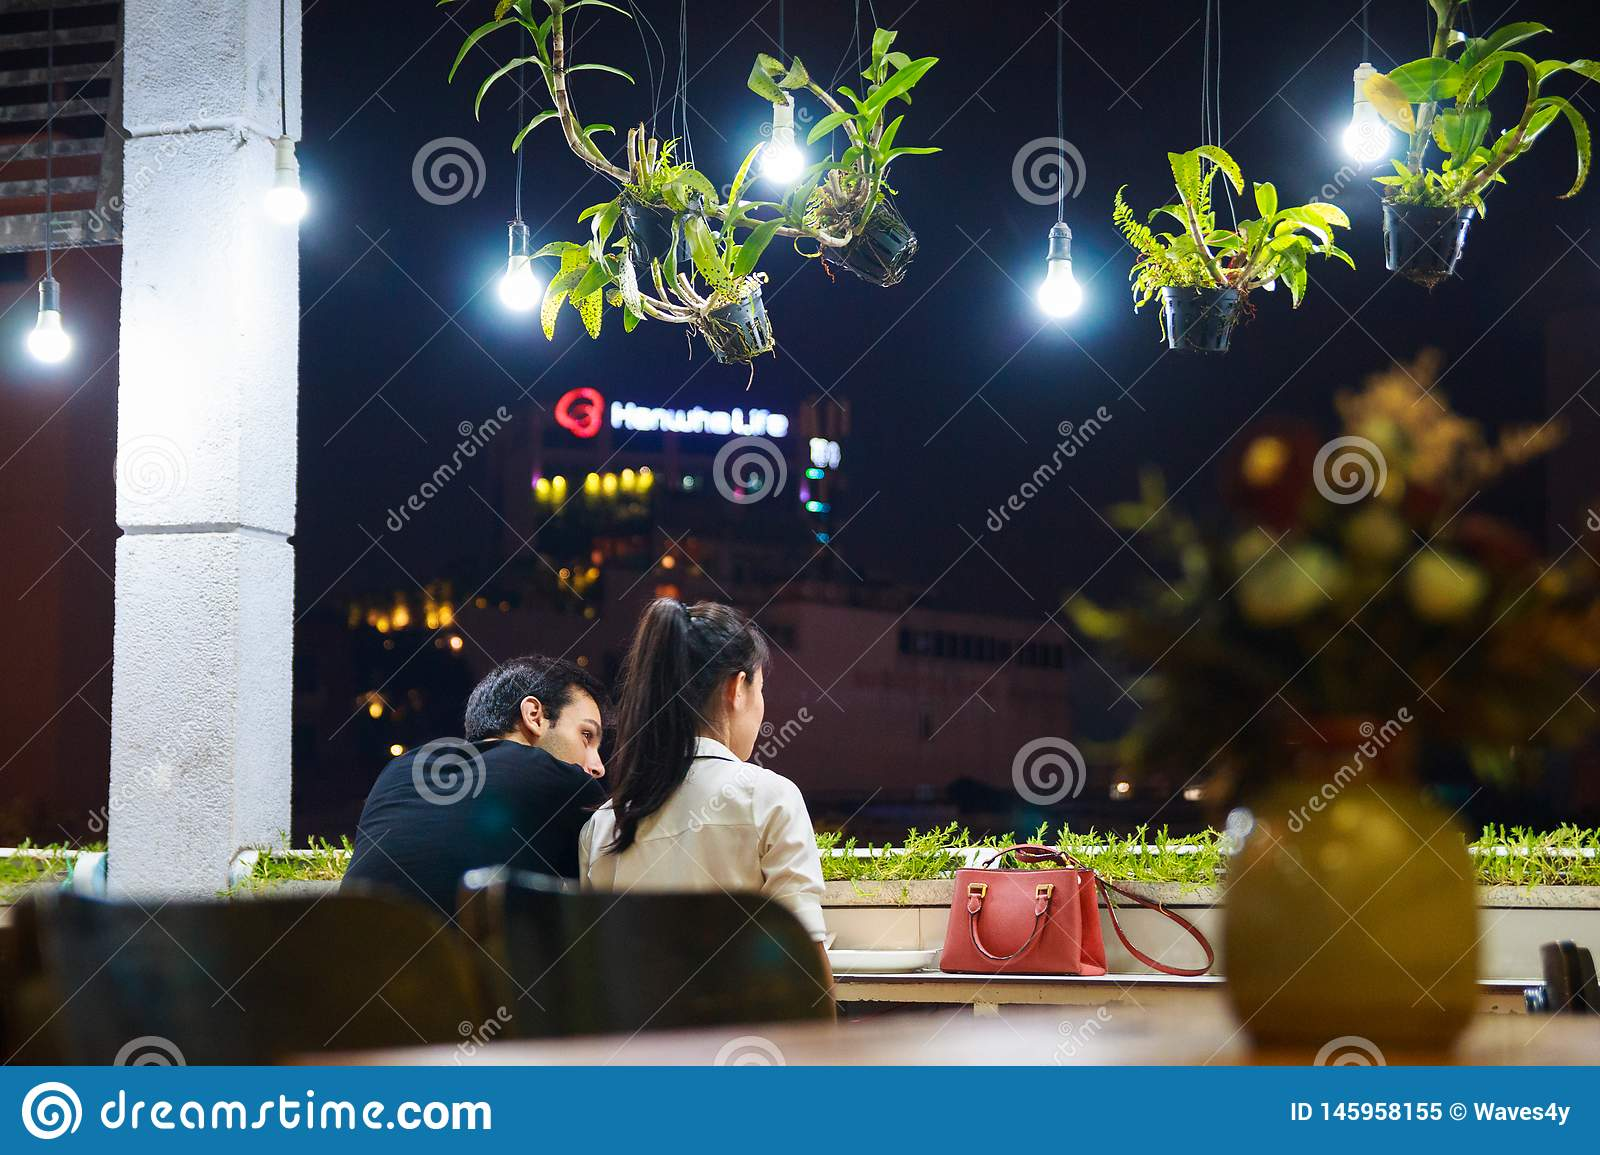 Ho Chi Minh city, Vietnam - December 2018: couple seats on the balcony of cozy cafe with lanterns and green plants.